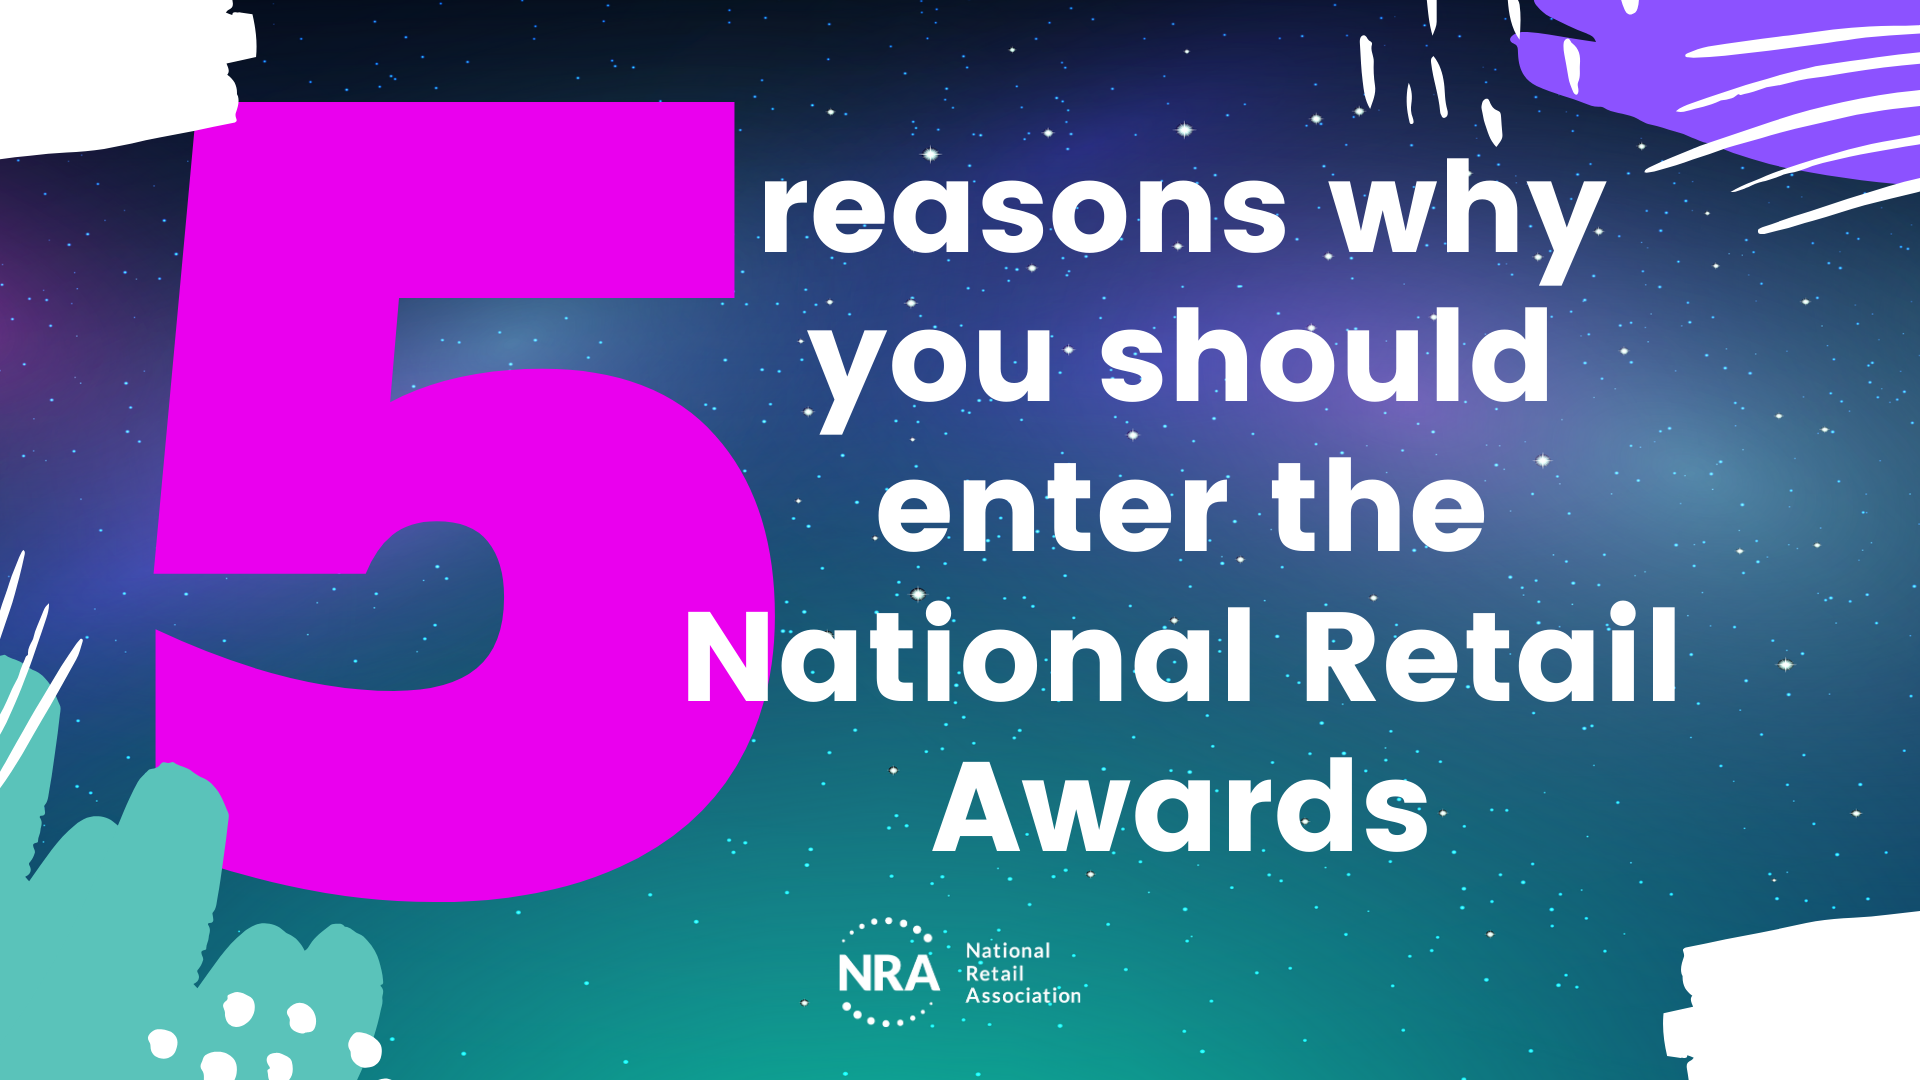 5 Reasons why you should enter the National Retail Awards